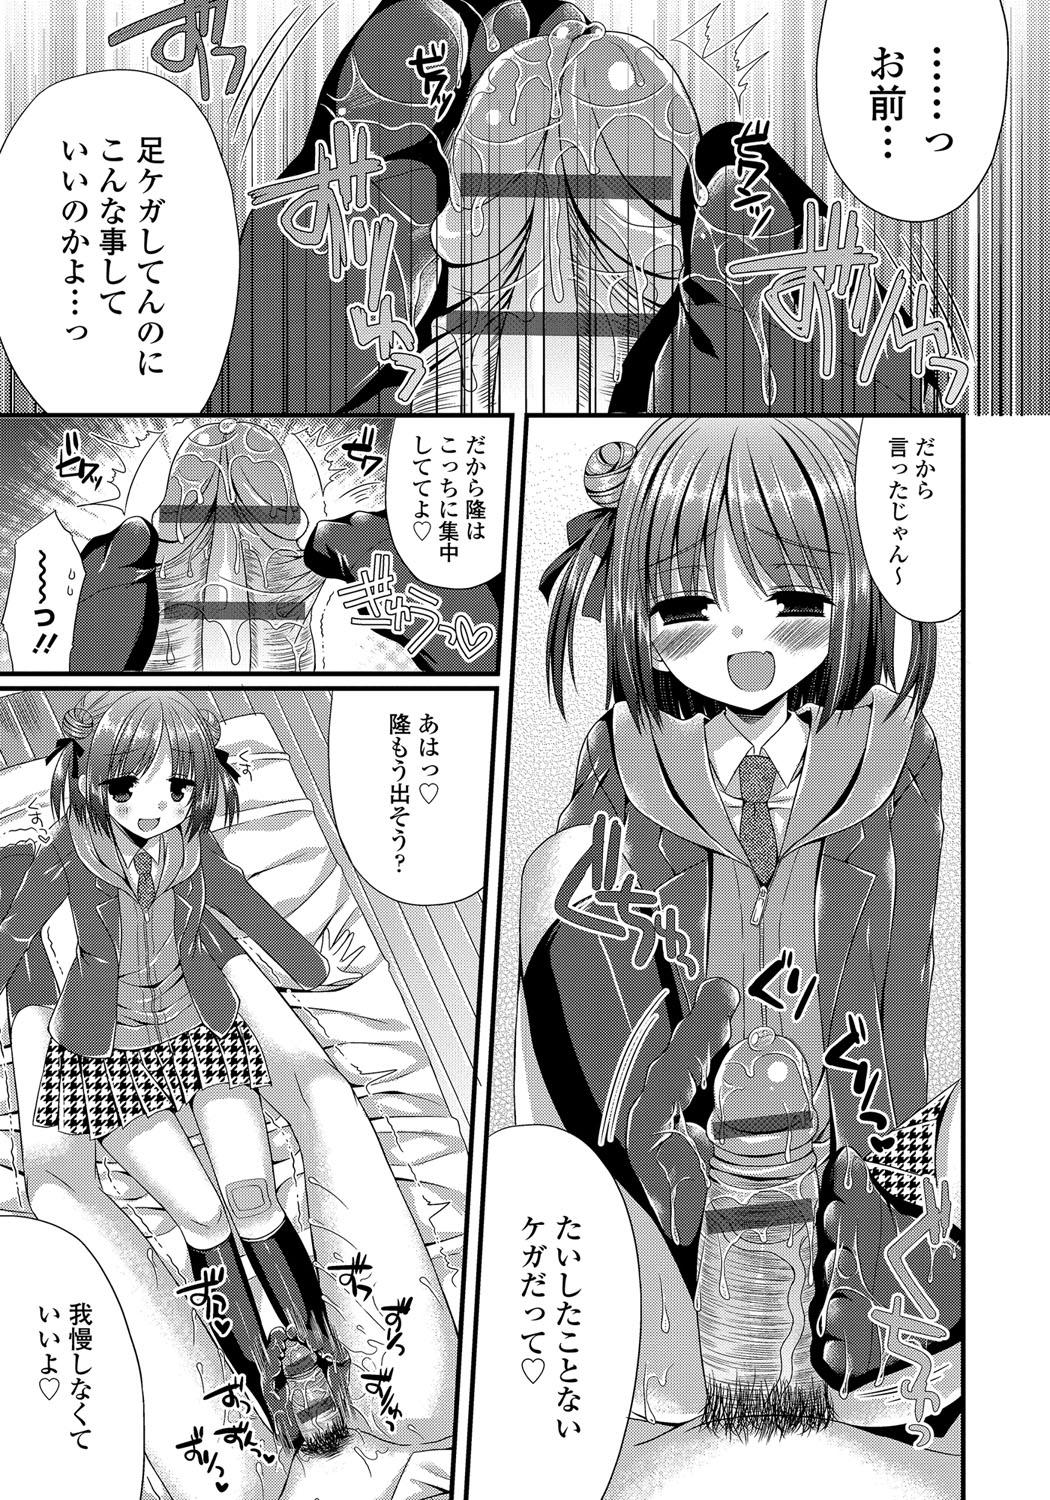 Kanojo to Hajimeteno - For the First Time with Her 97